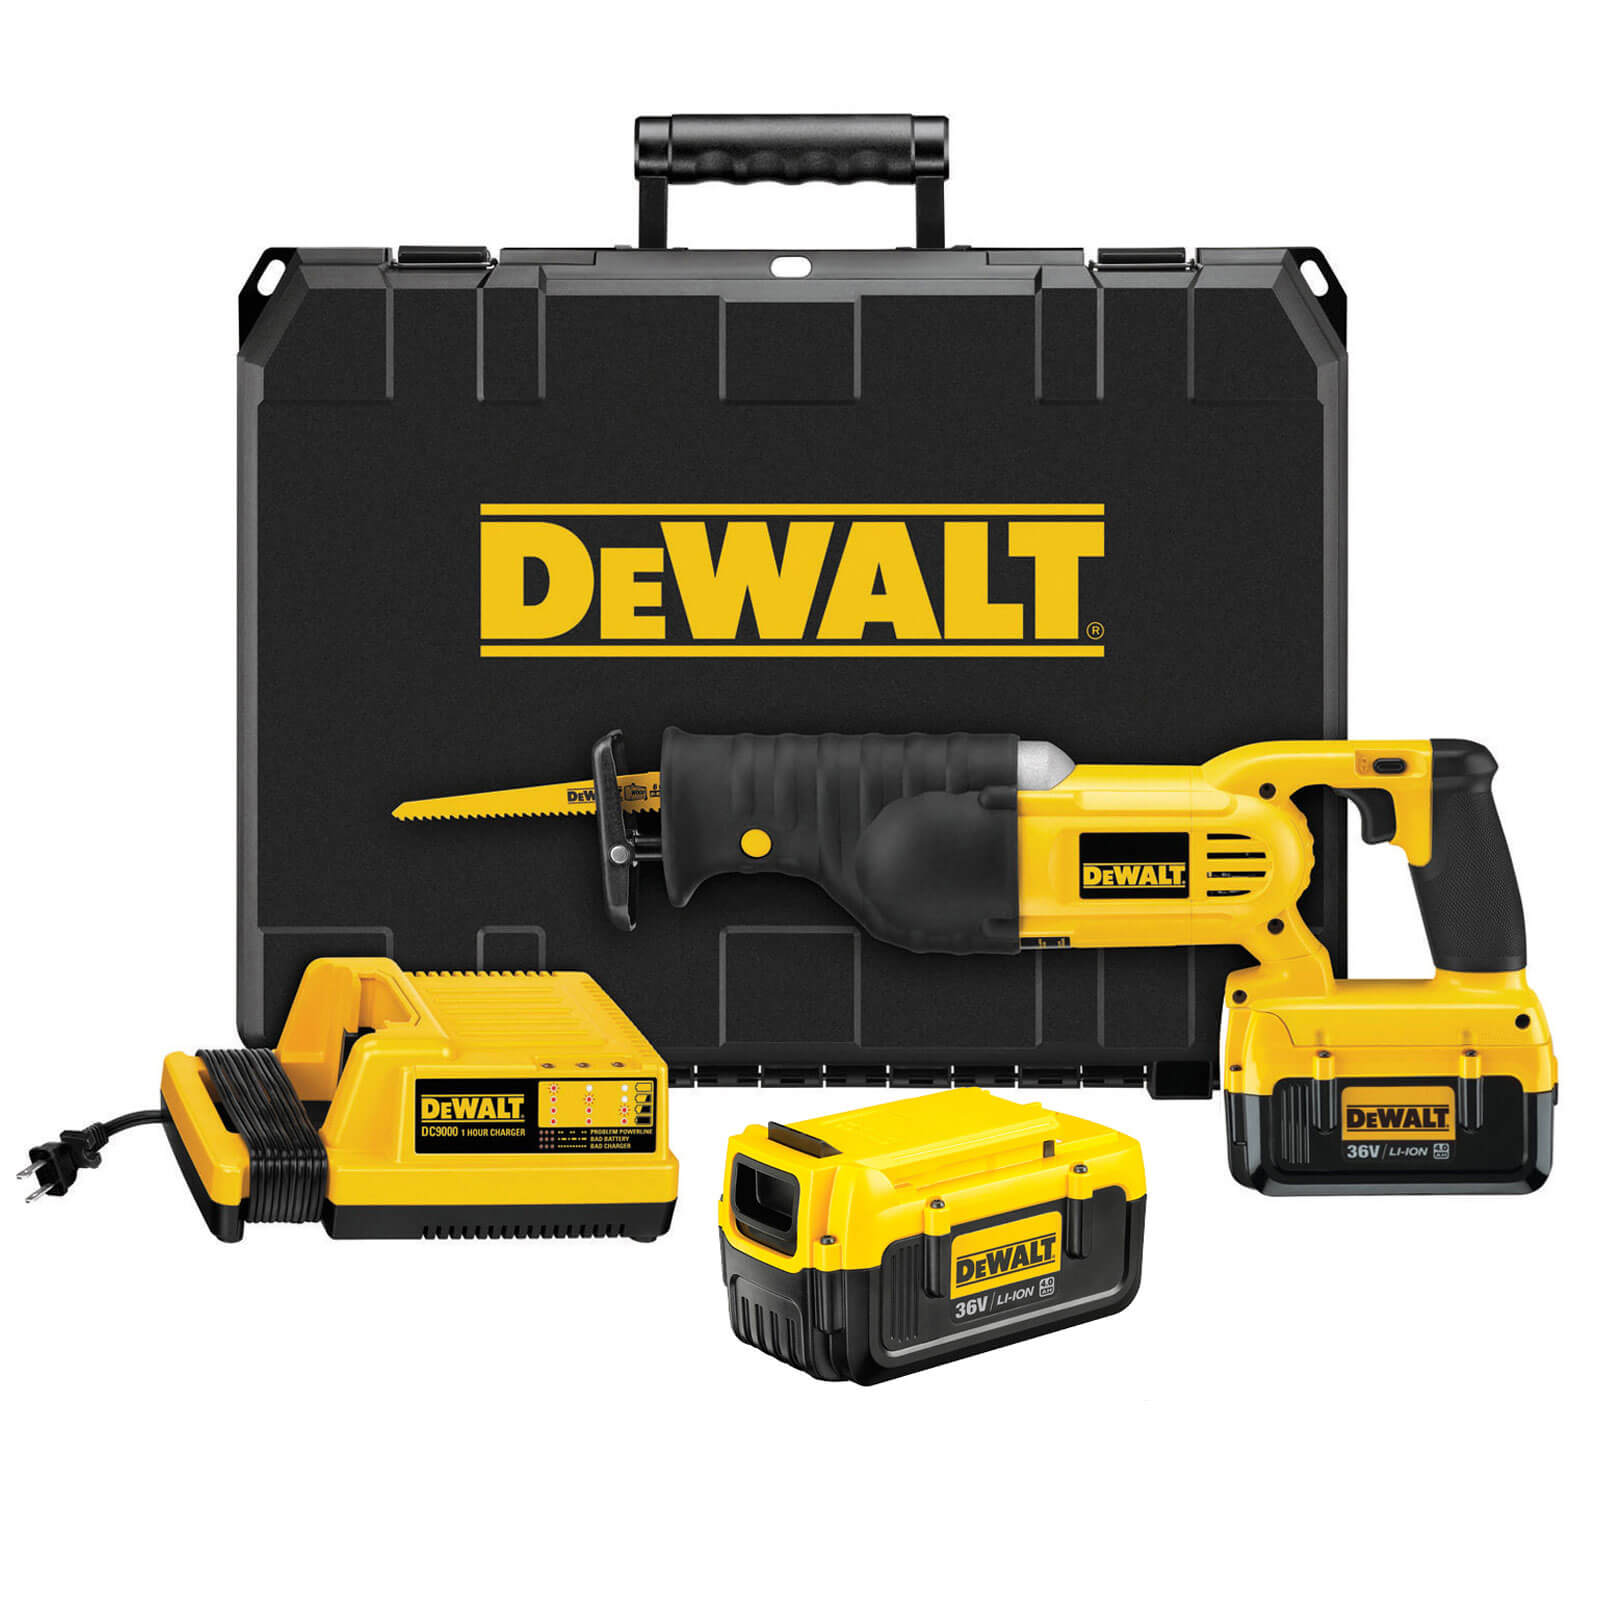 Dewalt DC305M2 36v Cordless Reciprocating Saw with 2 Lithium Ion Batteries 4ah & Kitbox